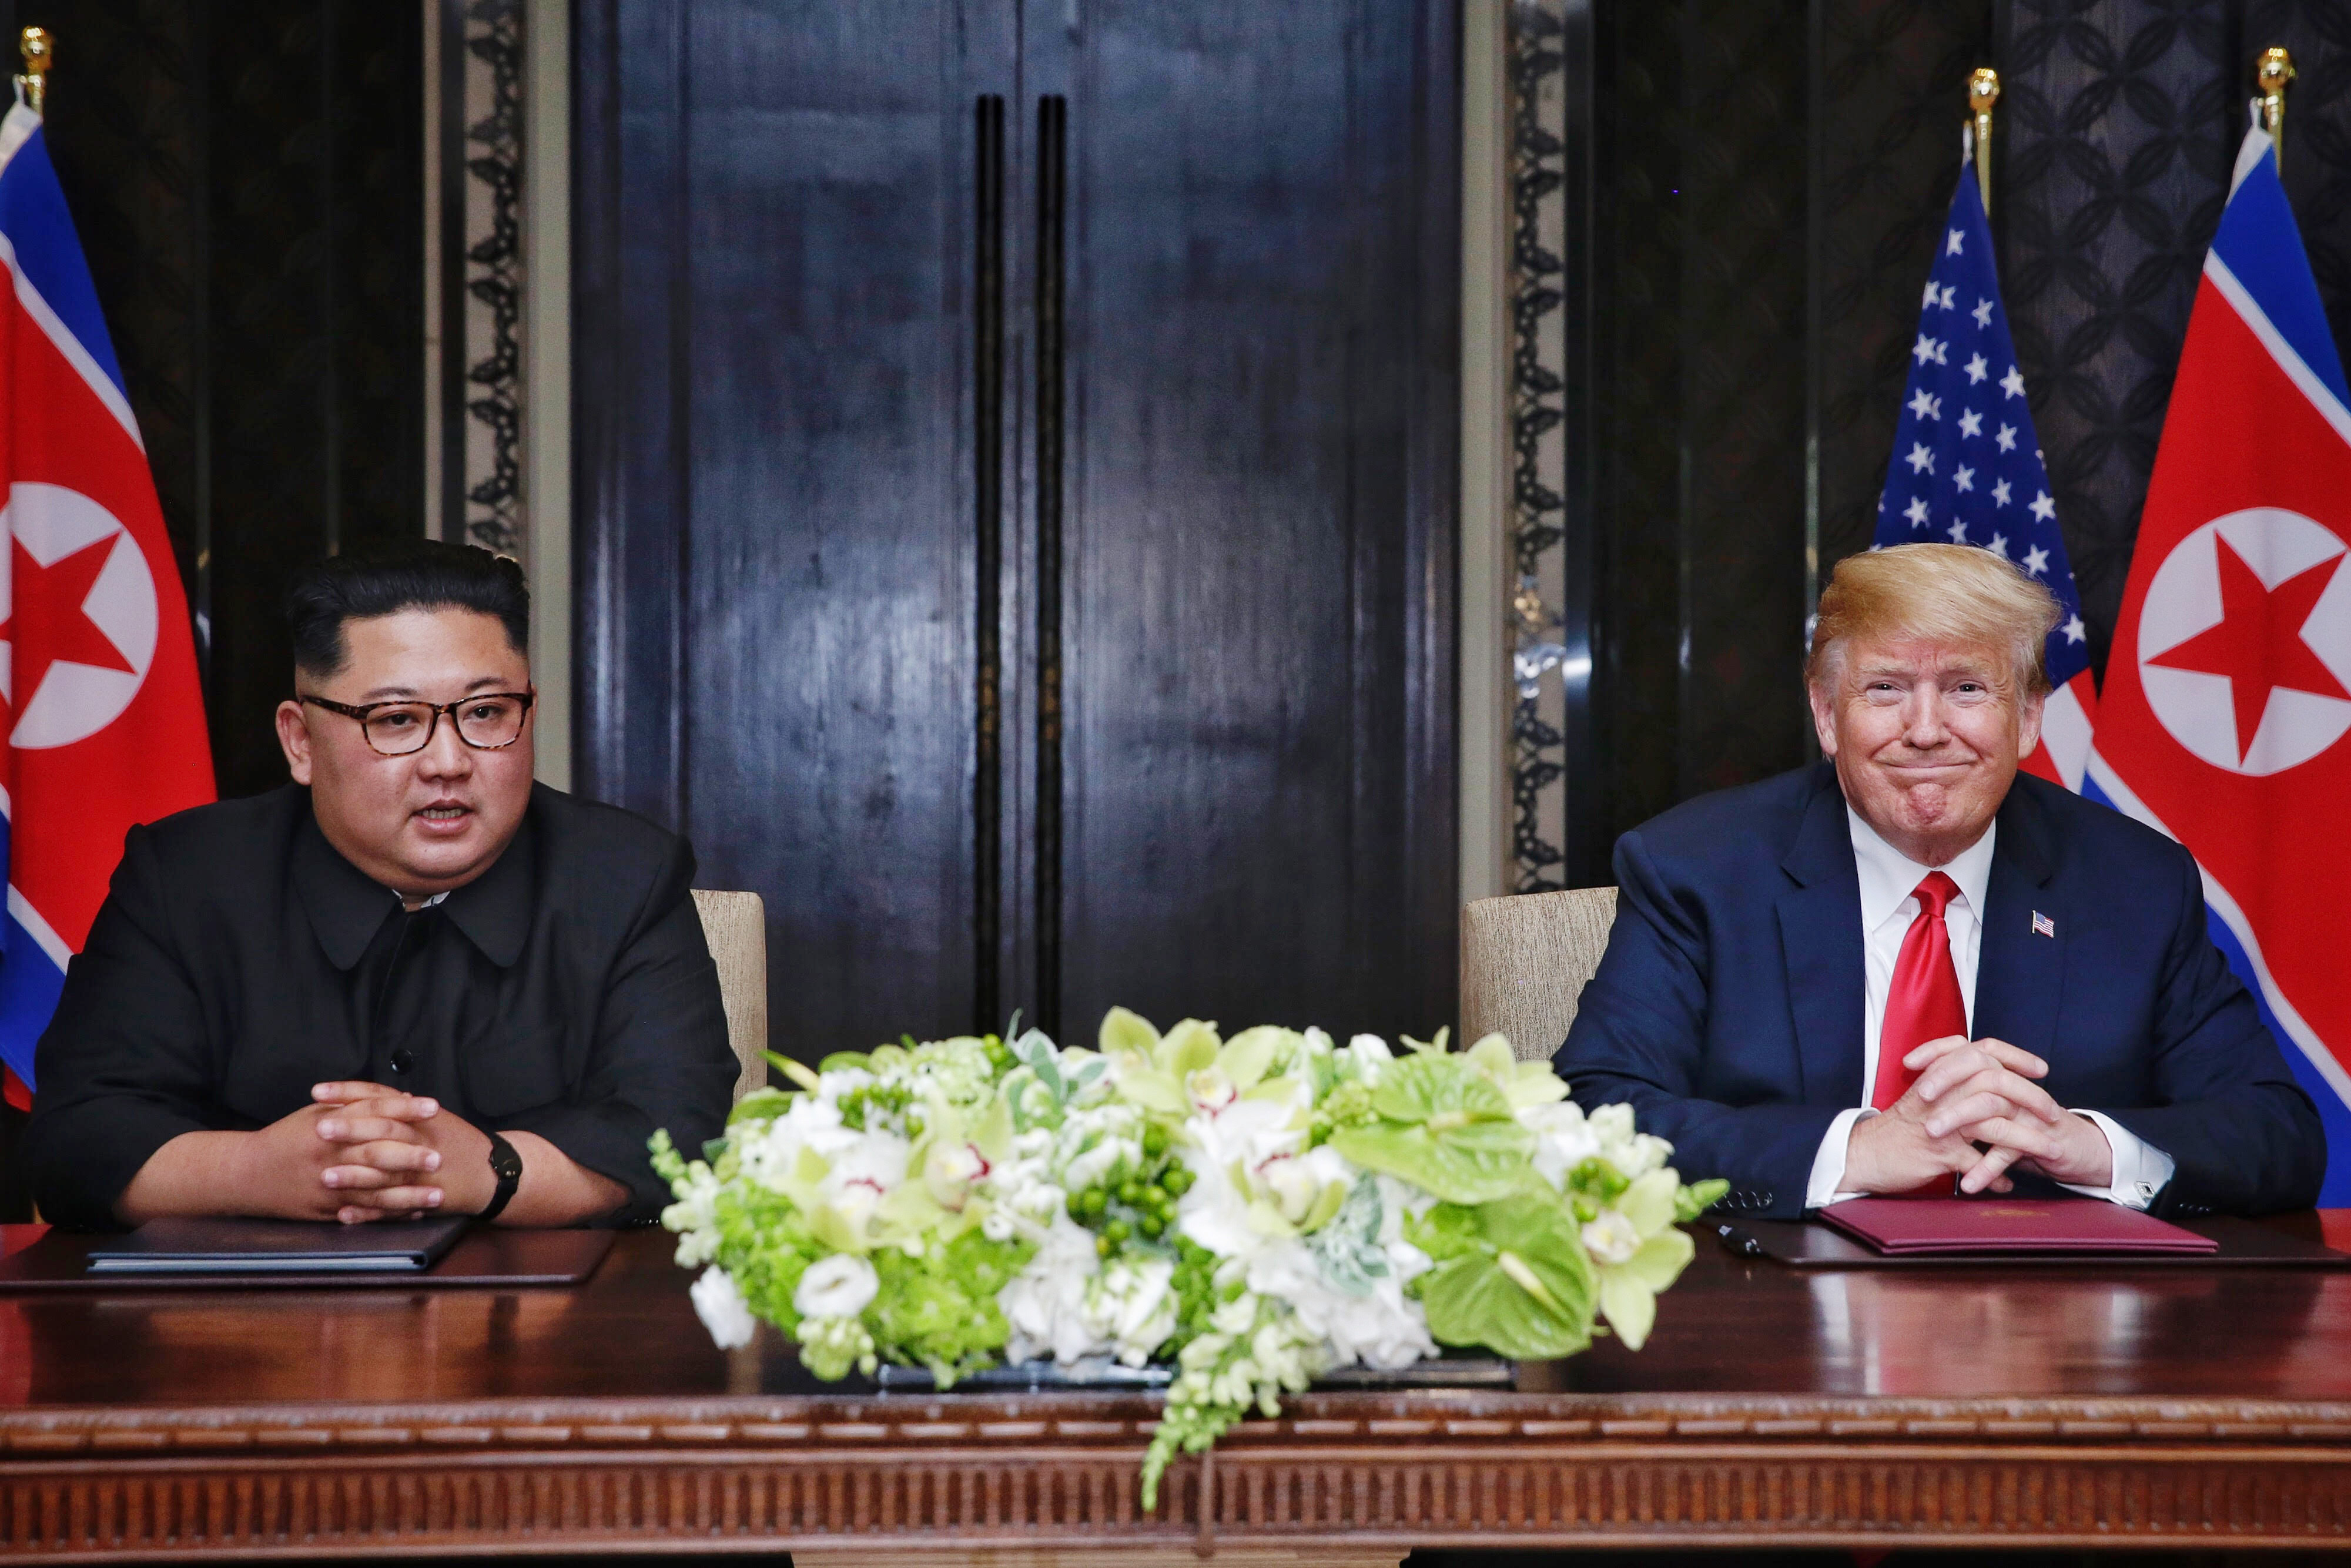 North Korean leader Kim Jong-un (L) with U.S. President Donald Trump (R) during their historic U.S.-DPRK summit at the Capella Hotel on Sentosa island on June 12, 2018 in Singapore